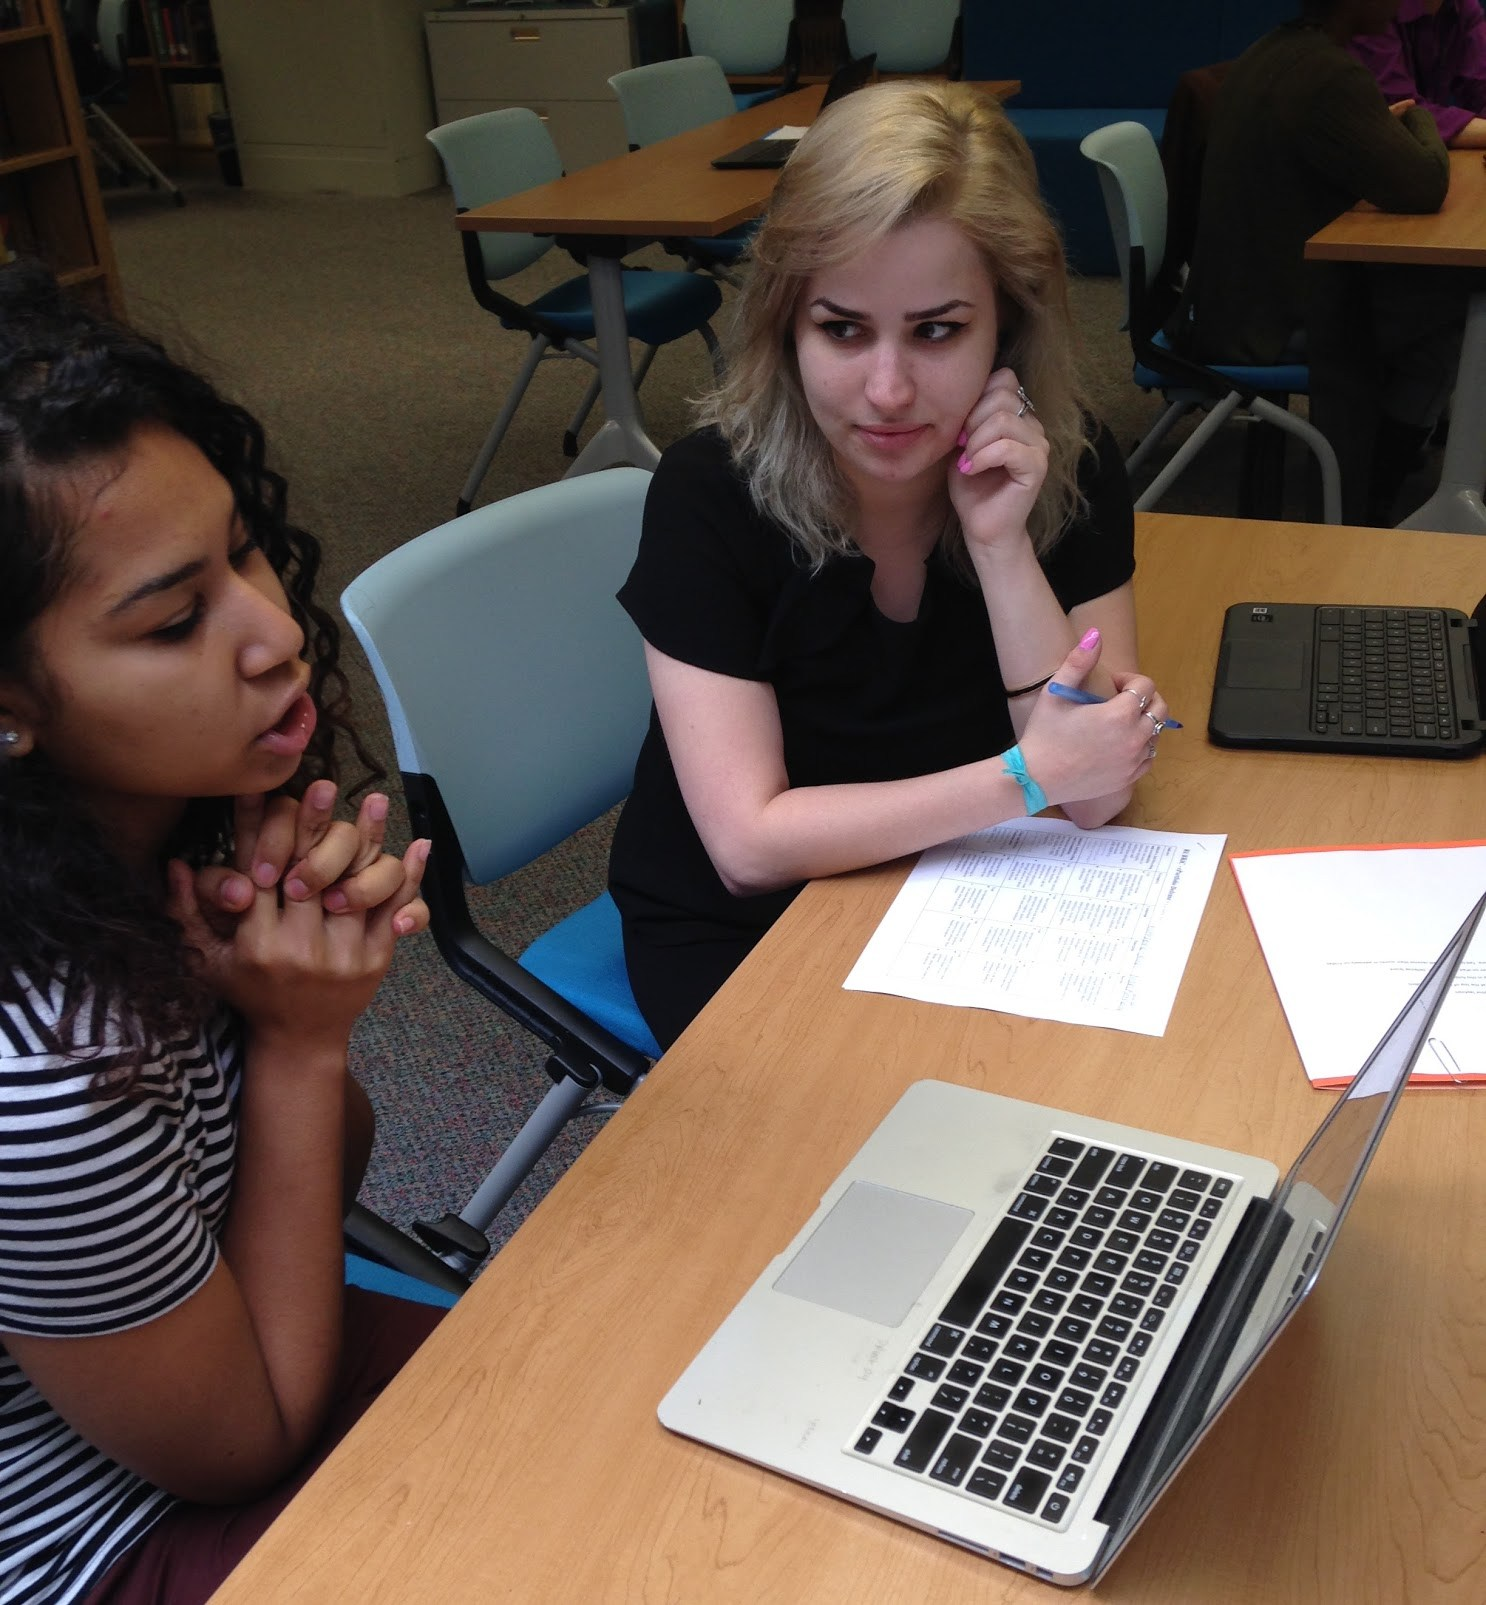 HSC teacher and student review student's ePortfolio